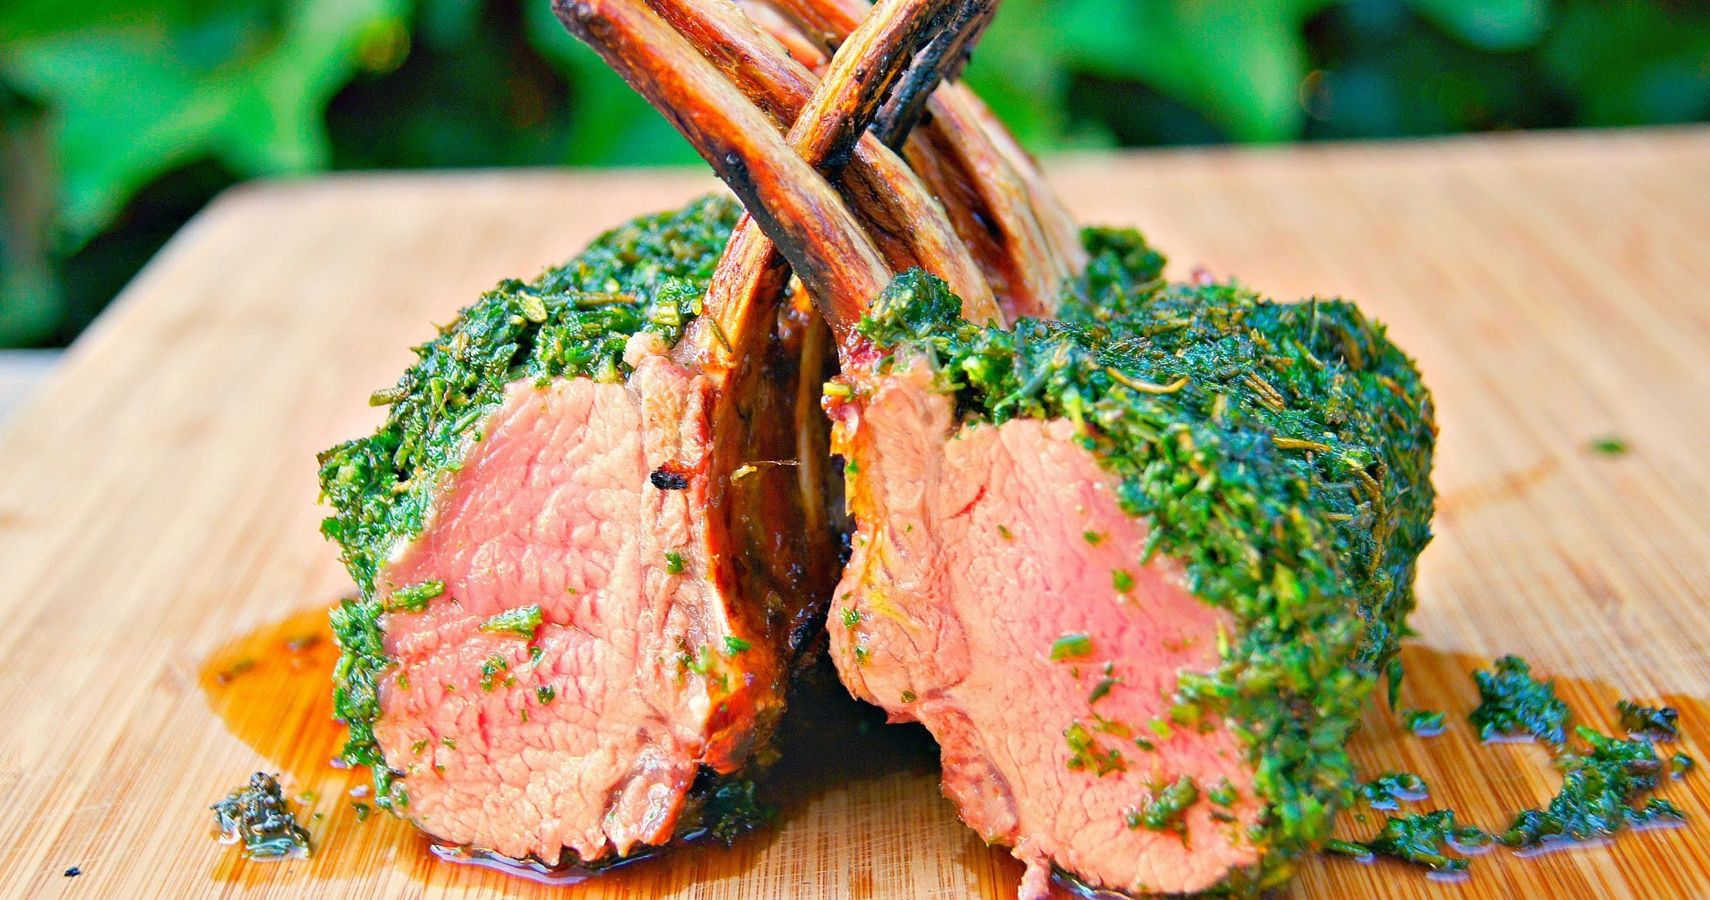 20 Amazing Gordon Ramsay Recipes That Foodies Need To Try